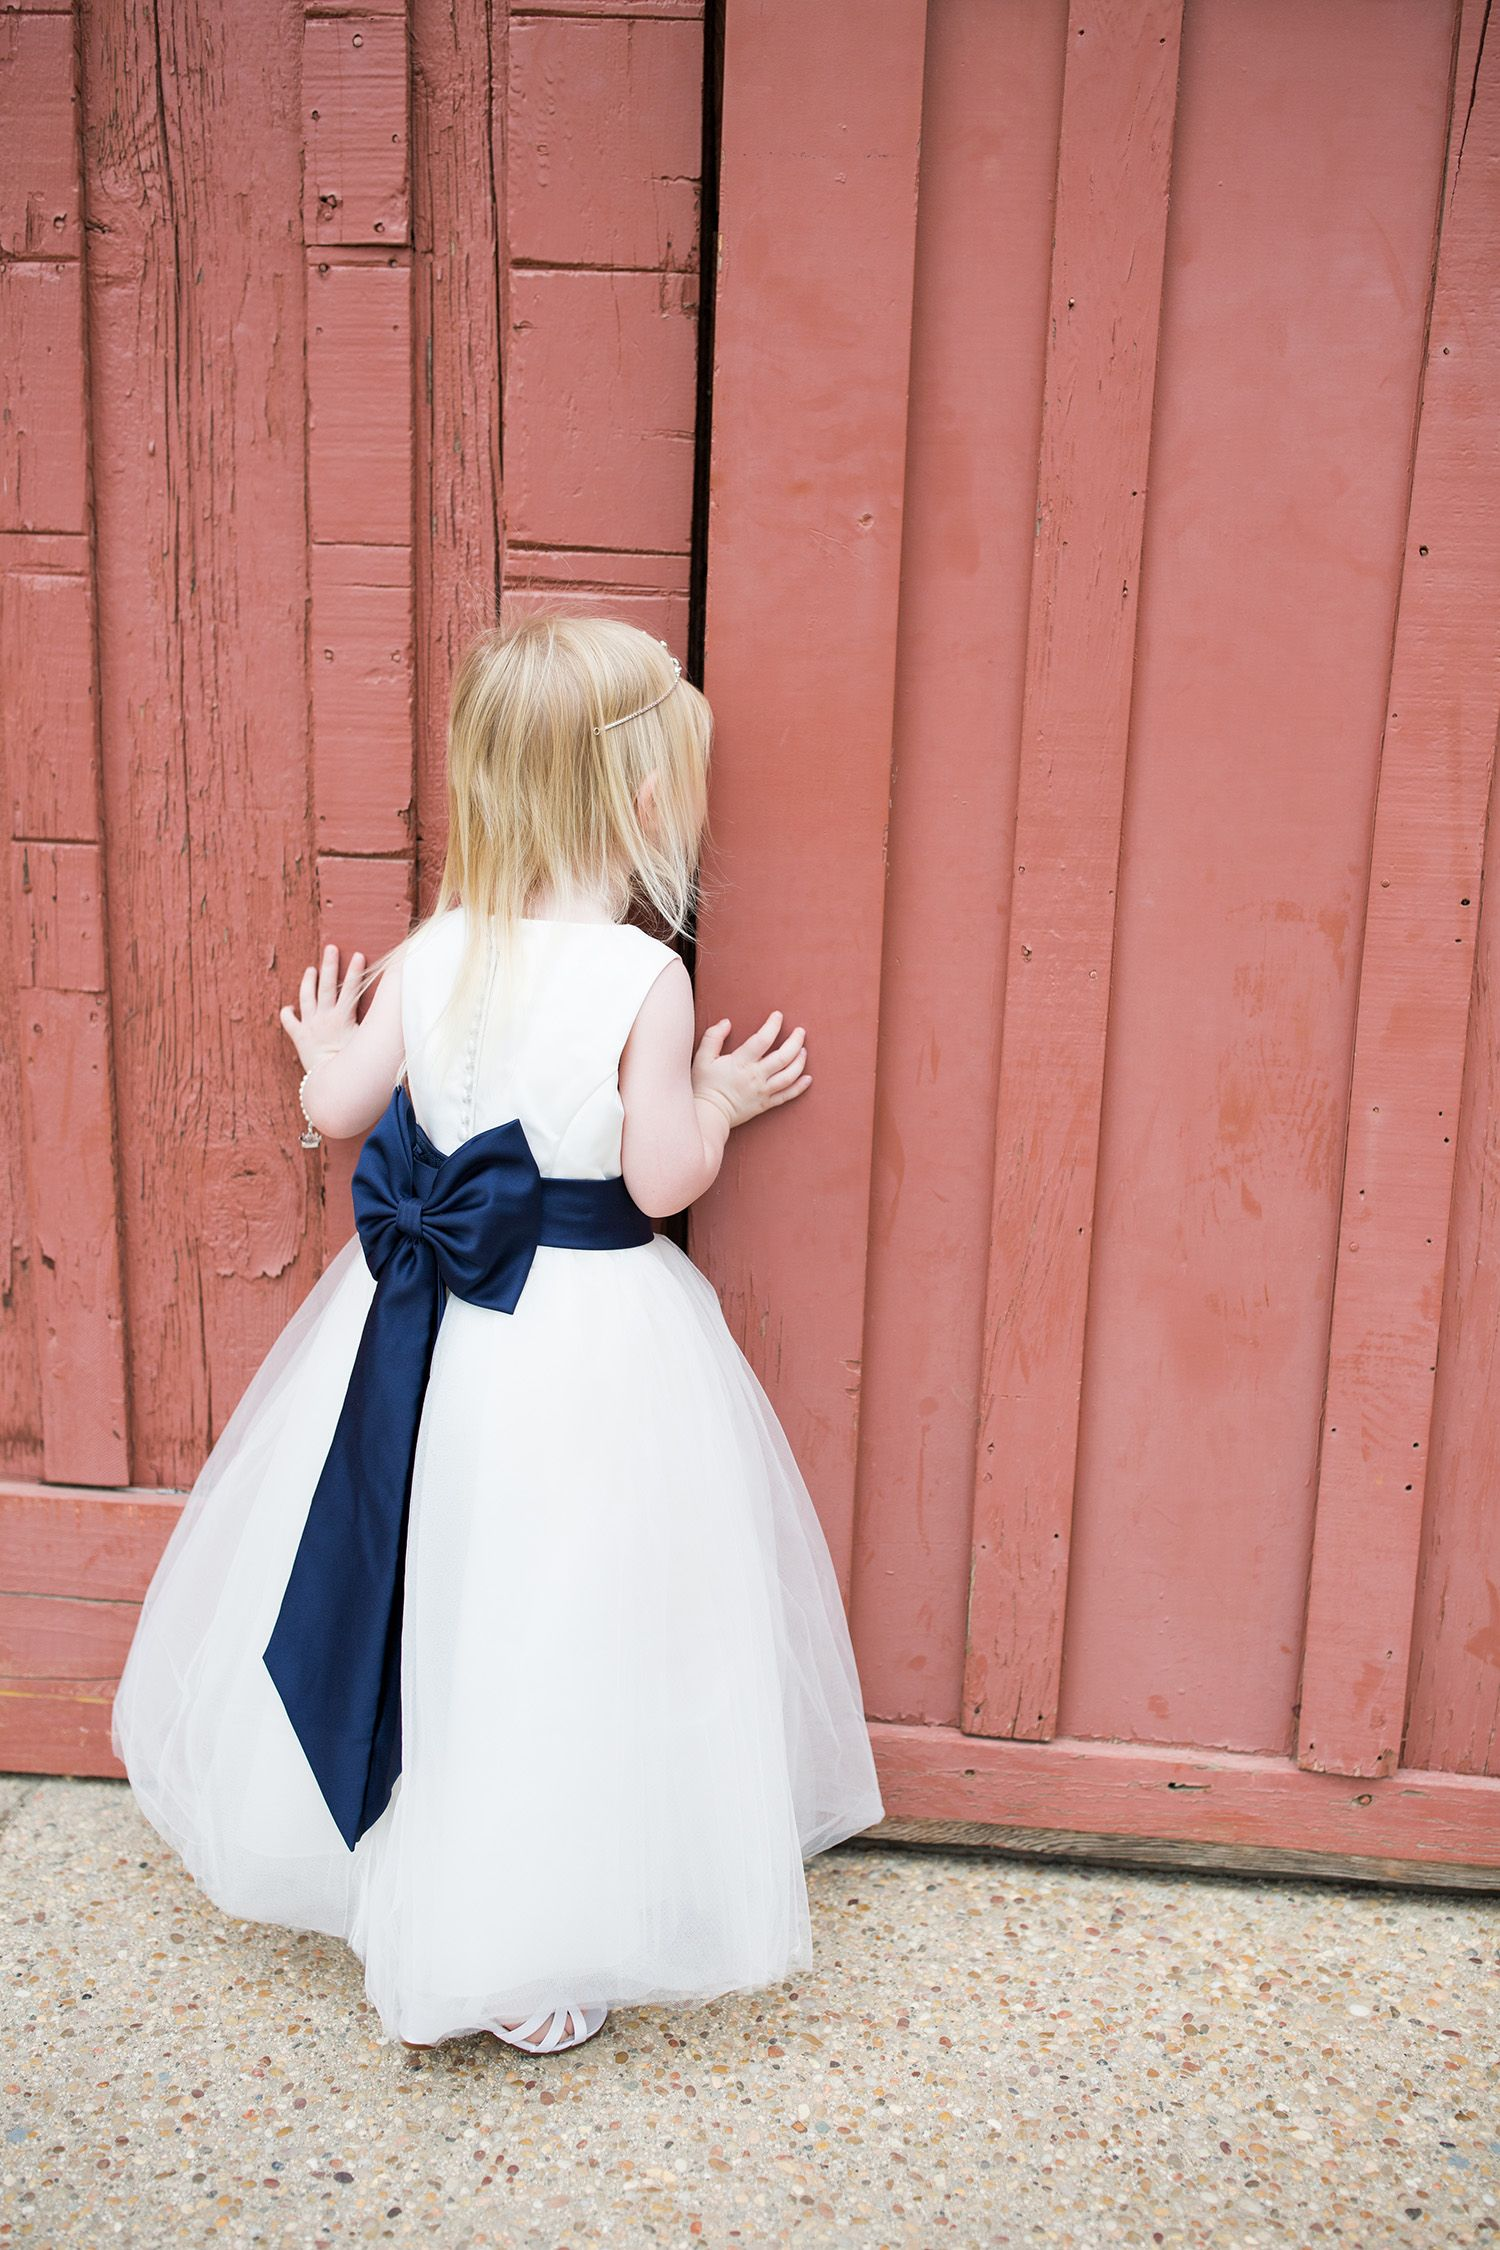 Fall wedding dresses flower girl dress and wedding guest ideas